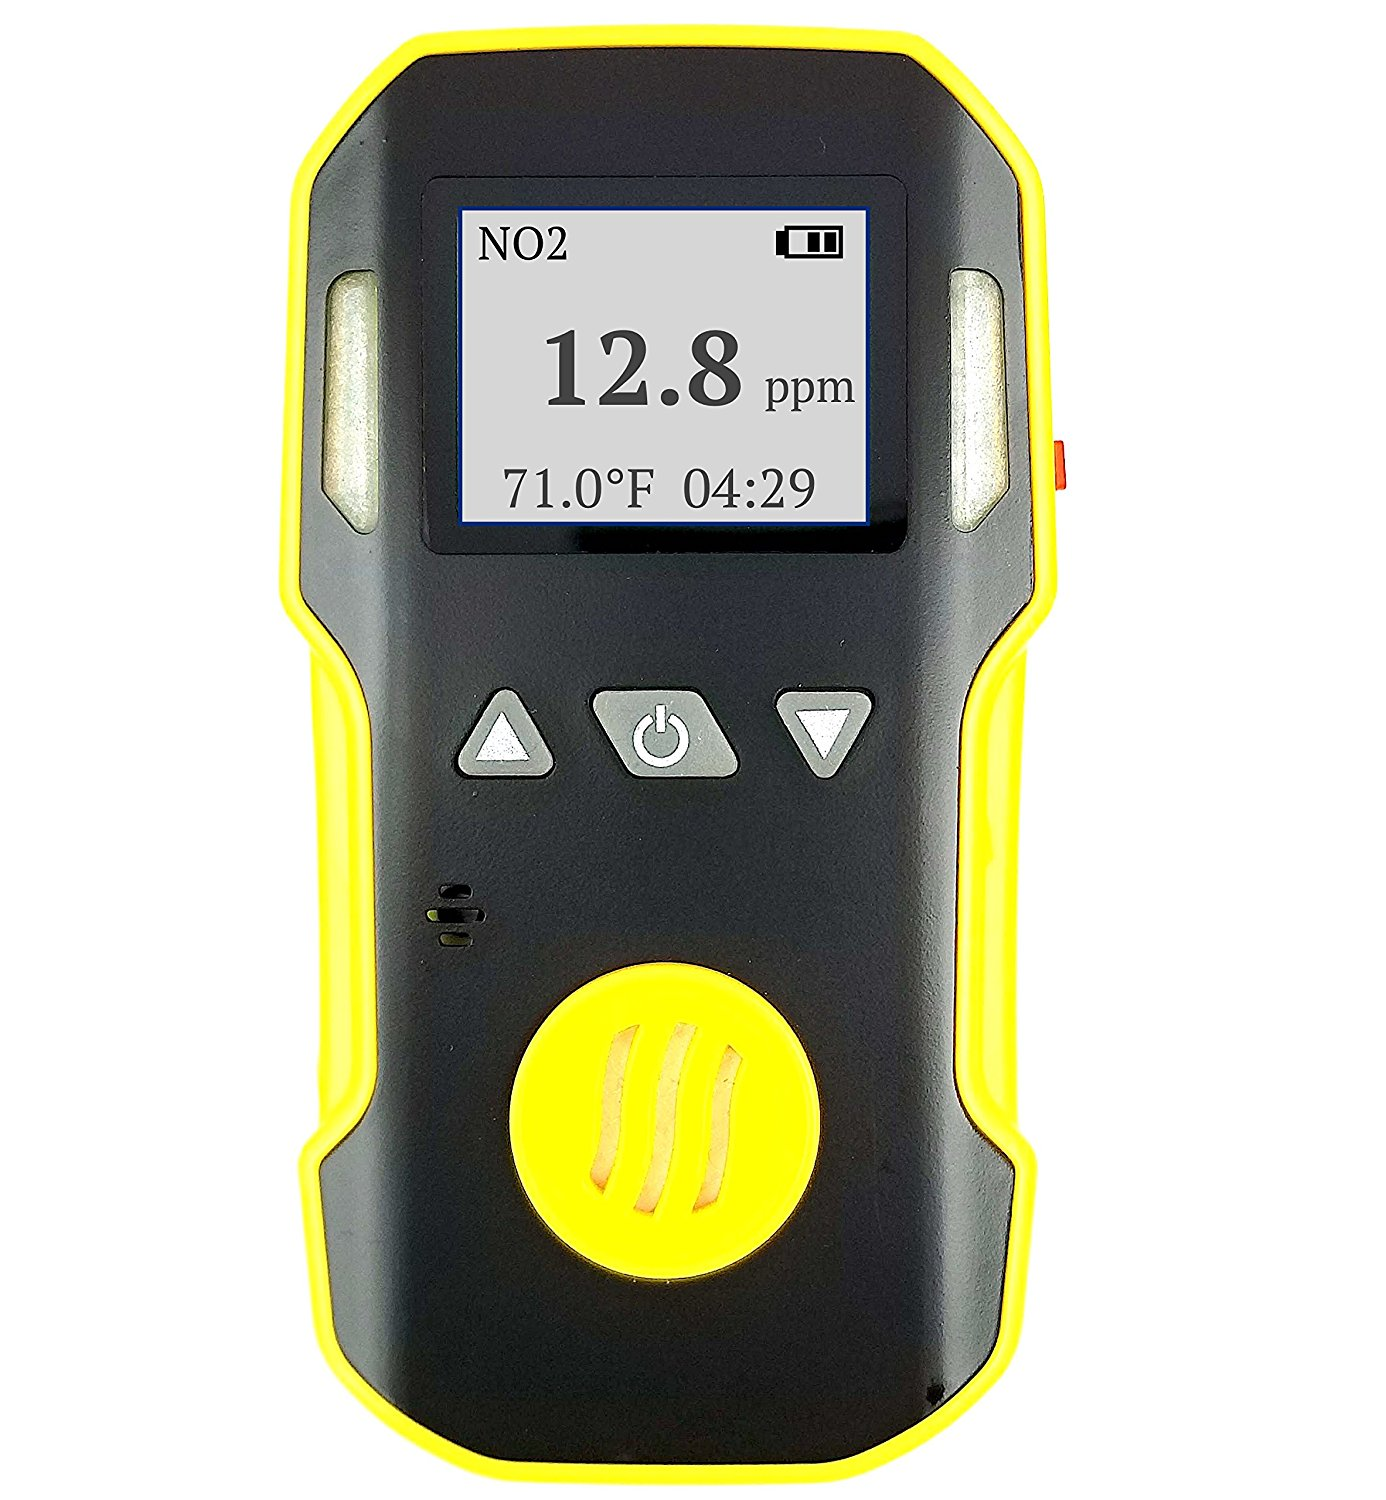 Nitrogen Dioxide NO2 Detector by FORENSICS & BOSEAN   ABS & Anti-slip Grip Rubber   Water, Dust & Explosion Proof   Li-ion Battery 1500mAh   Adjustable Sound, Light & Vibration Alarms   0-20ppm NO2  